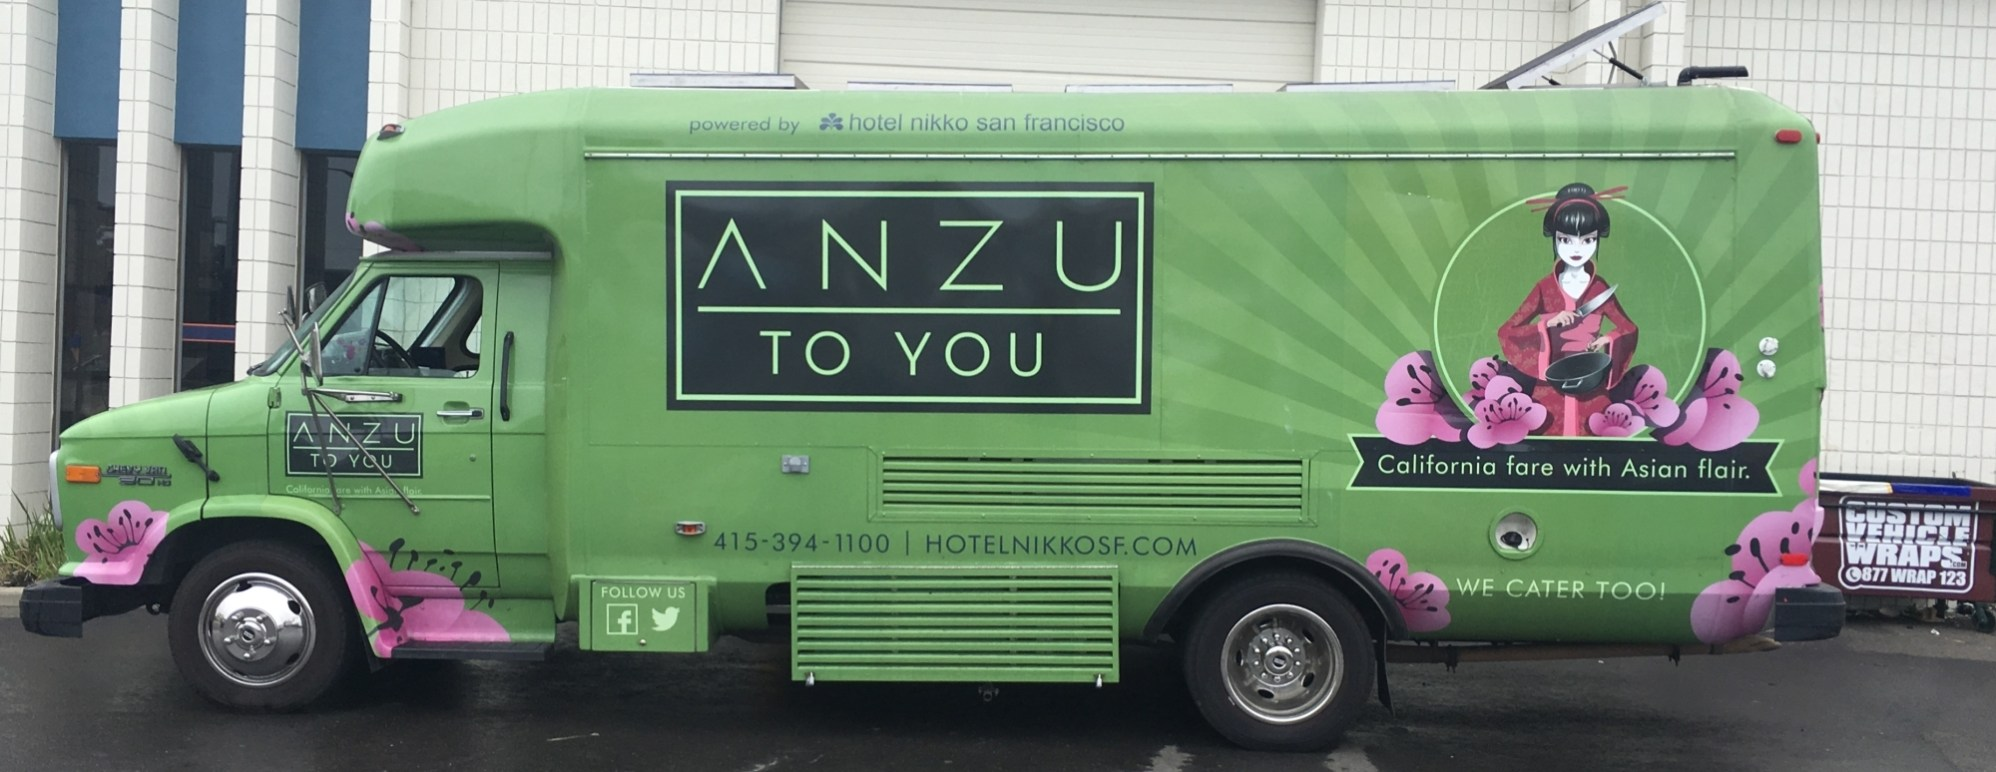 nikko sf anzu food truck wrap-04